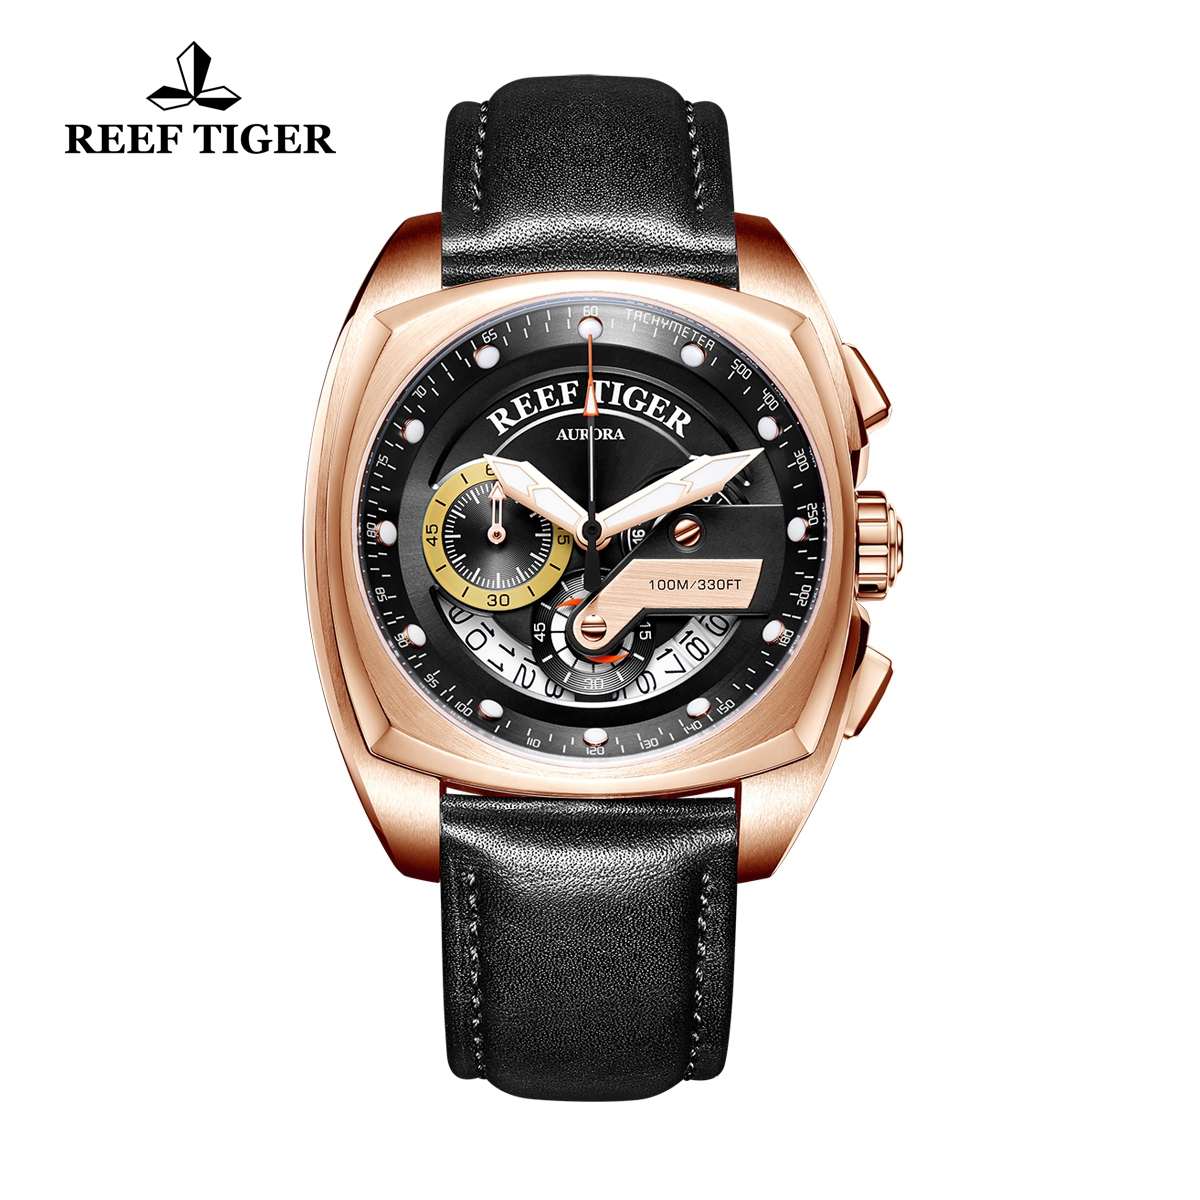 Reef Tiger Aurora Formula Race Fashion Rose Gold Leather Strap Black Dial Quartz Watch RGA3363-PBB